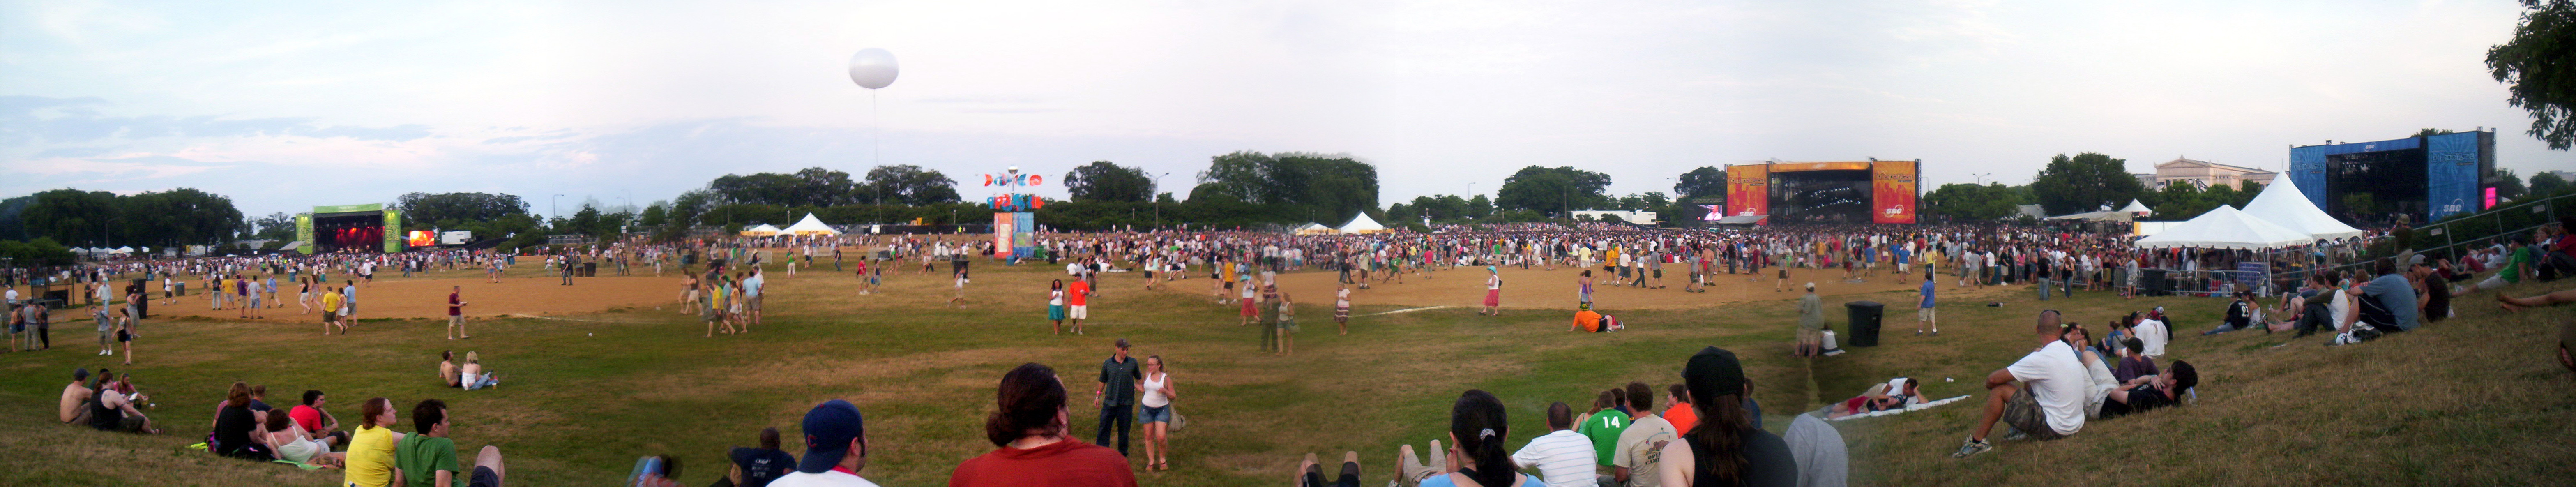 Lollapalooza Festival Grounds